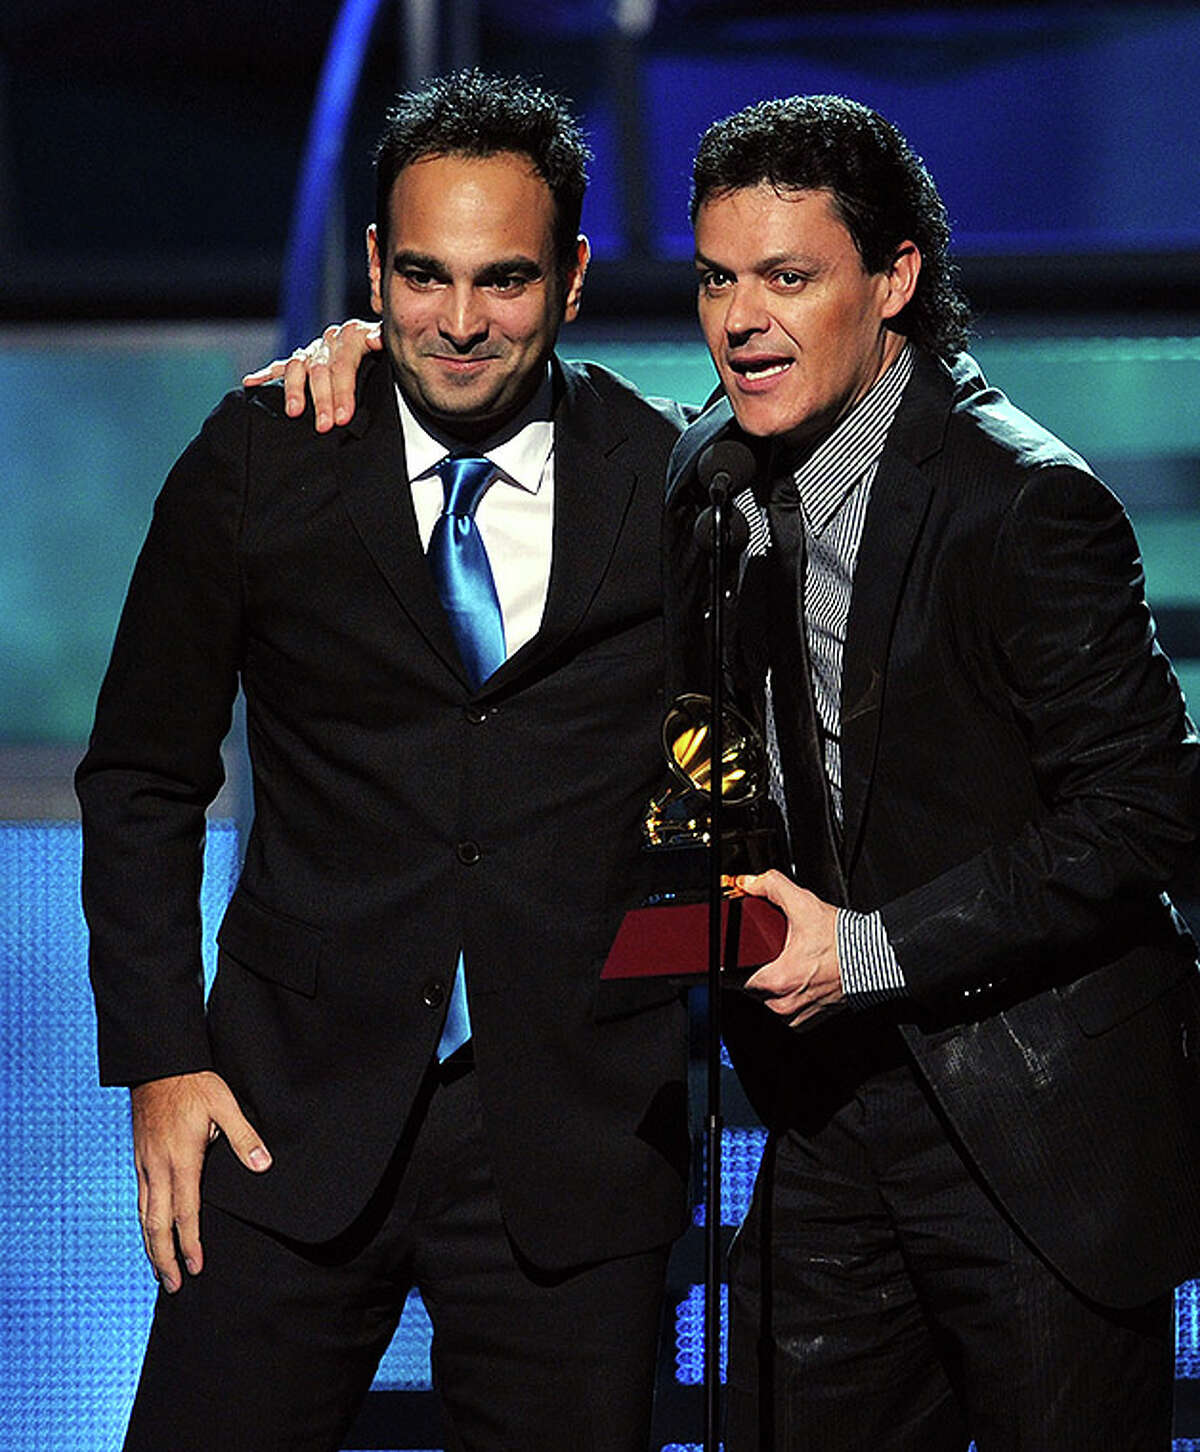 LAS VEGAS - NOVEMBER 11: Yoel Henriquez (L) and Pedro Fernandez accept the Best Regional Mexican Song award onstage during the 11th annual Latin GRAMMY Awards at the Mandalay Bay Events Center on November 11, 2010 in Las Vegas, Nevada. (Photo by Kevin Winter/Getty Images for LARAS) *** Local Caption *** Yoel Henriquez;Pedro Fernandez